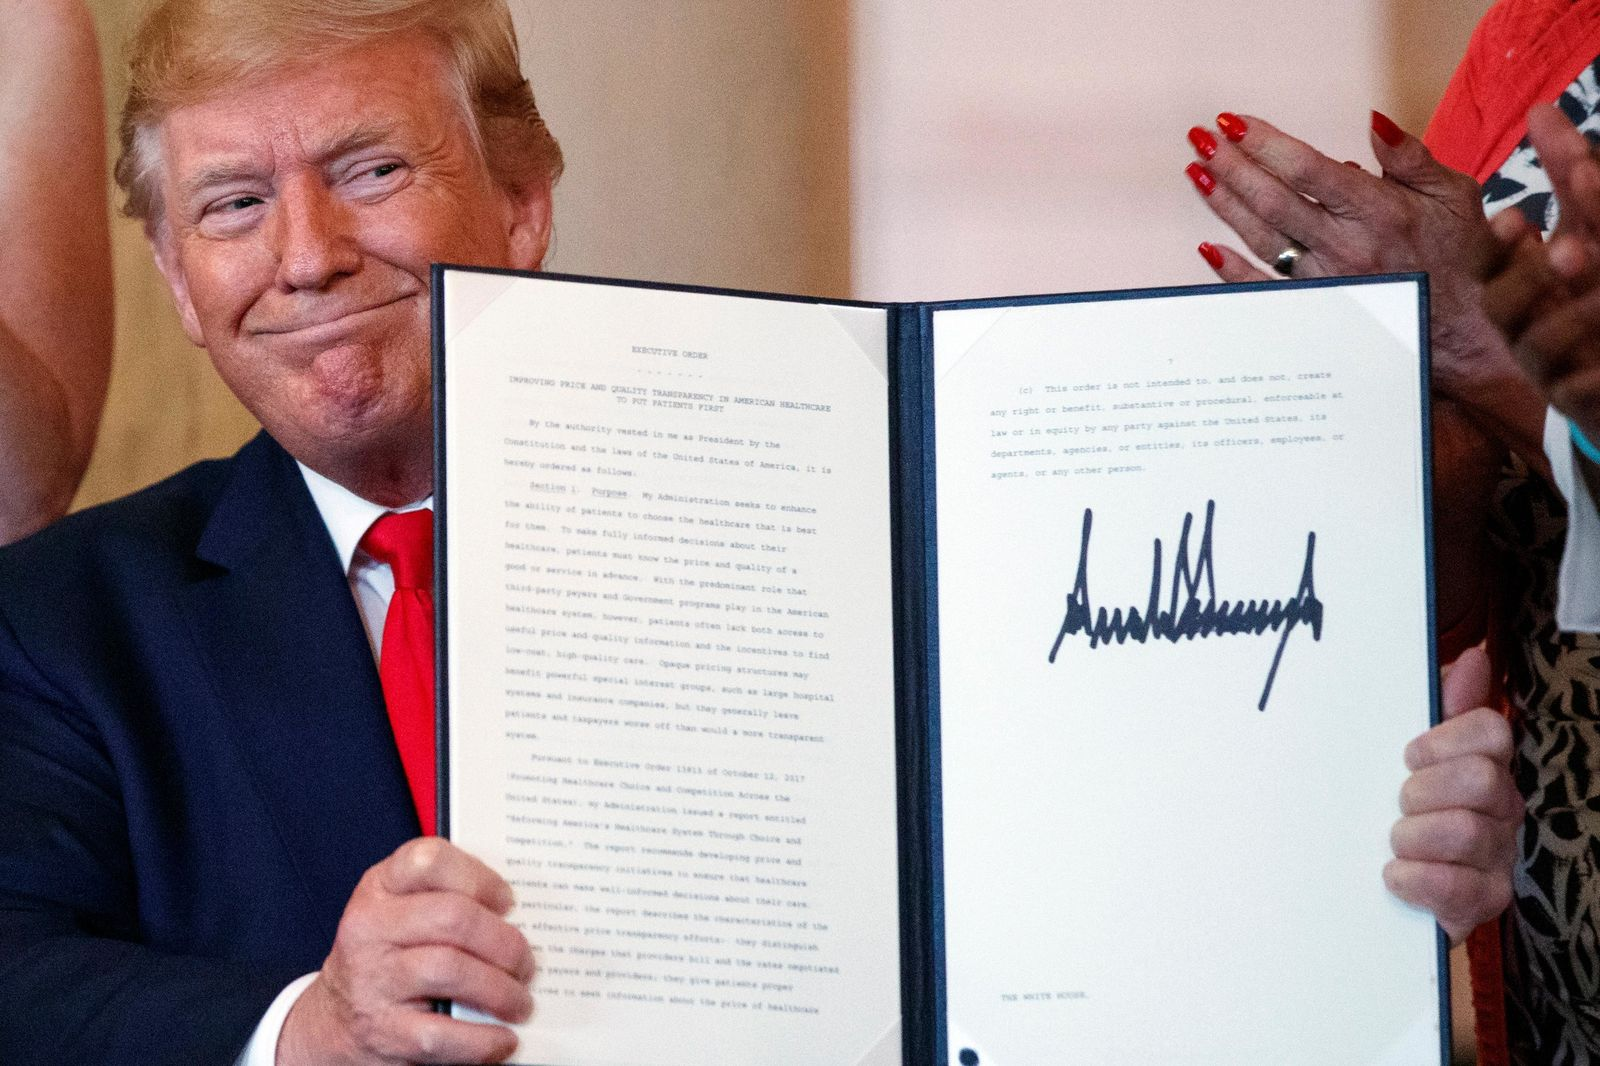 FILE - In this June 24, 2019, file photo, President Donald Trump holds up an executive order during a signing ceremony that calls for upfront disclosure by hospitals of actual prices for common tests and procedures to keep costs down, at the White House in Washington,. Trump is now three for three. Each year of his presidency, he has issued more executive orders than did former President Barack Obama during the same time-span. (AP Photo/Carolyn Kaster, File)